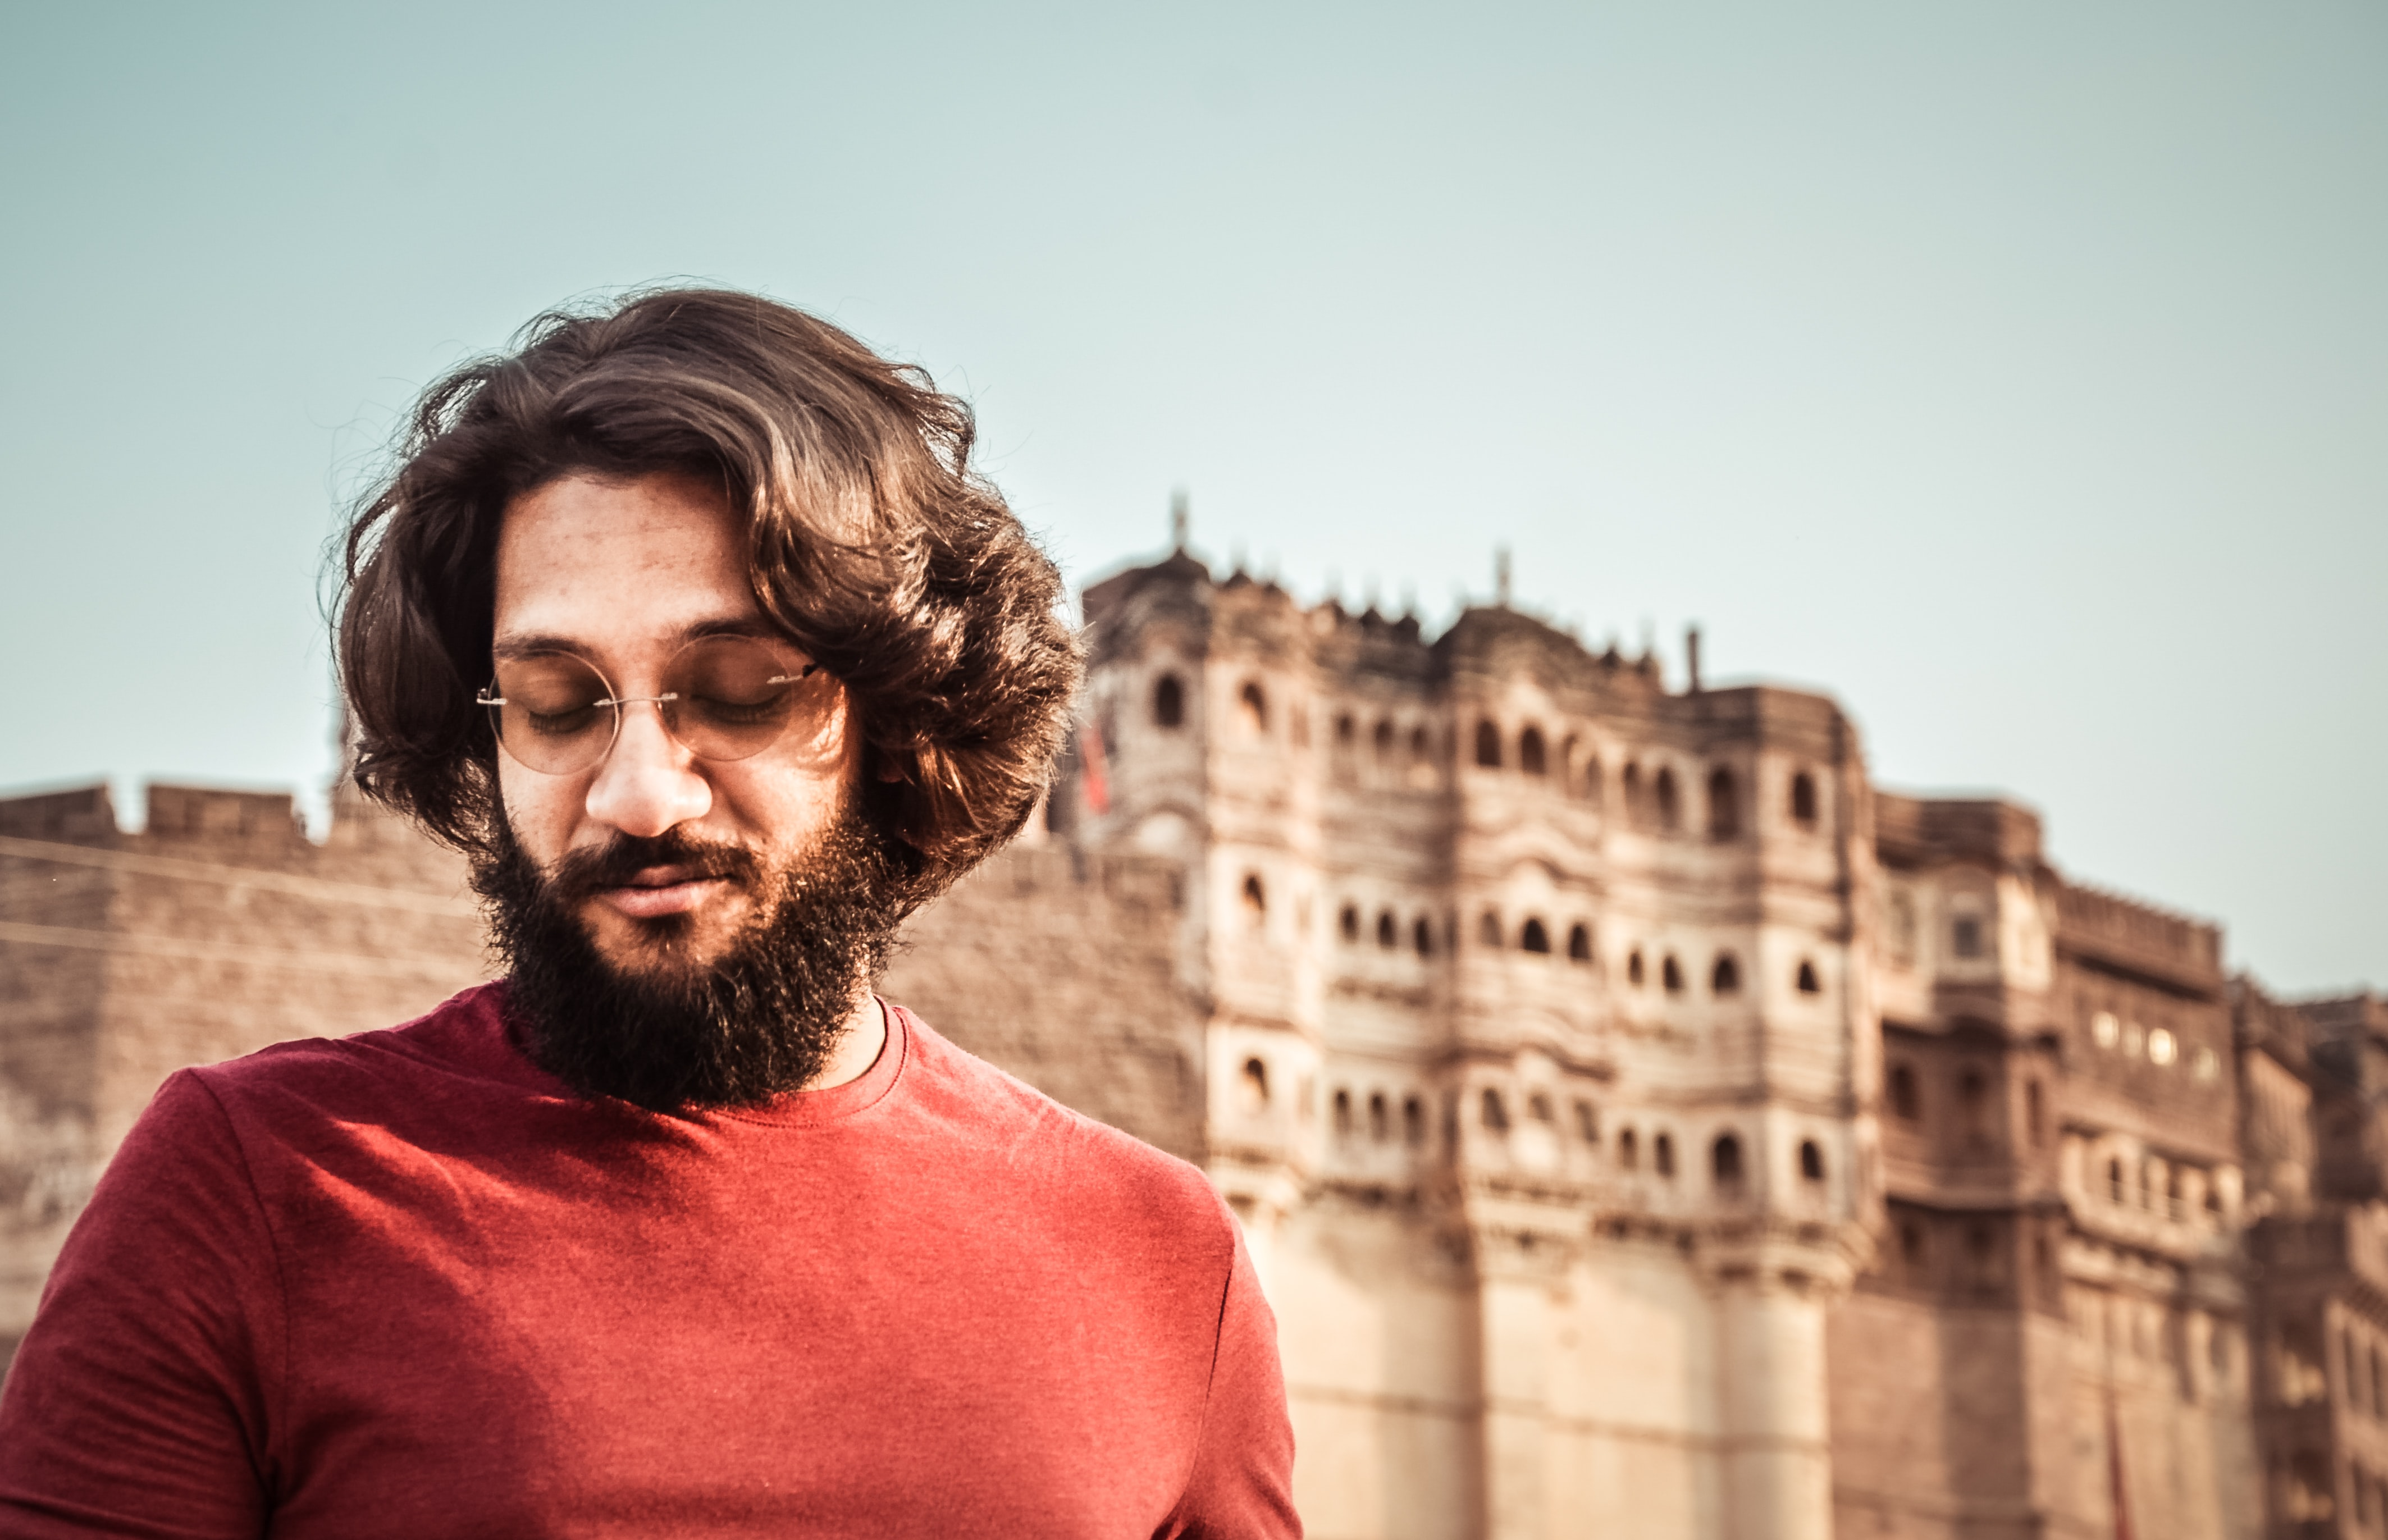 man wearing red crew-neck shirt standing near the ancient palace